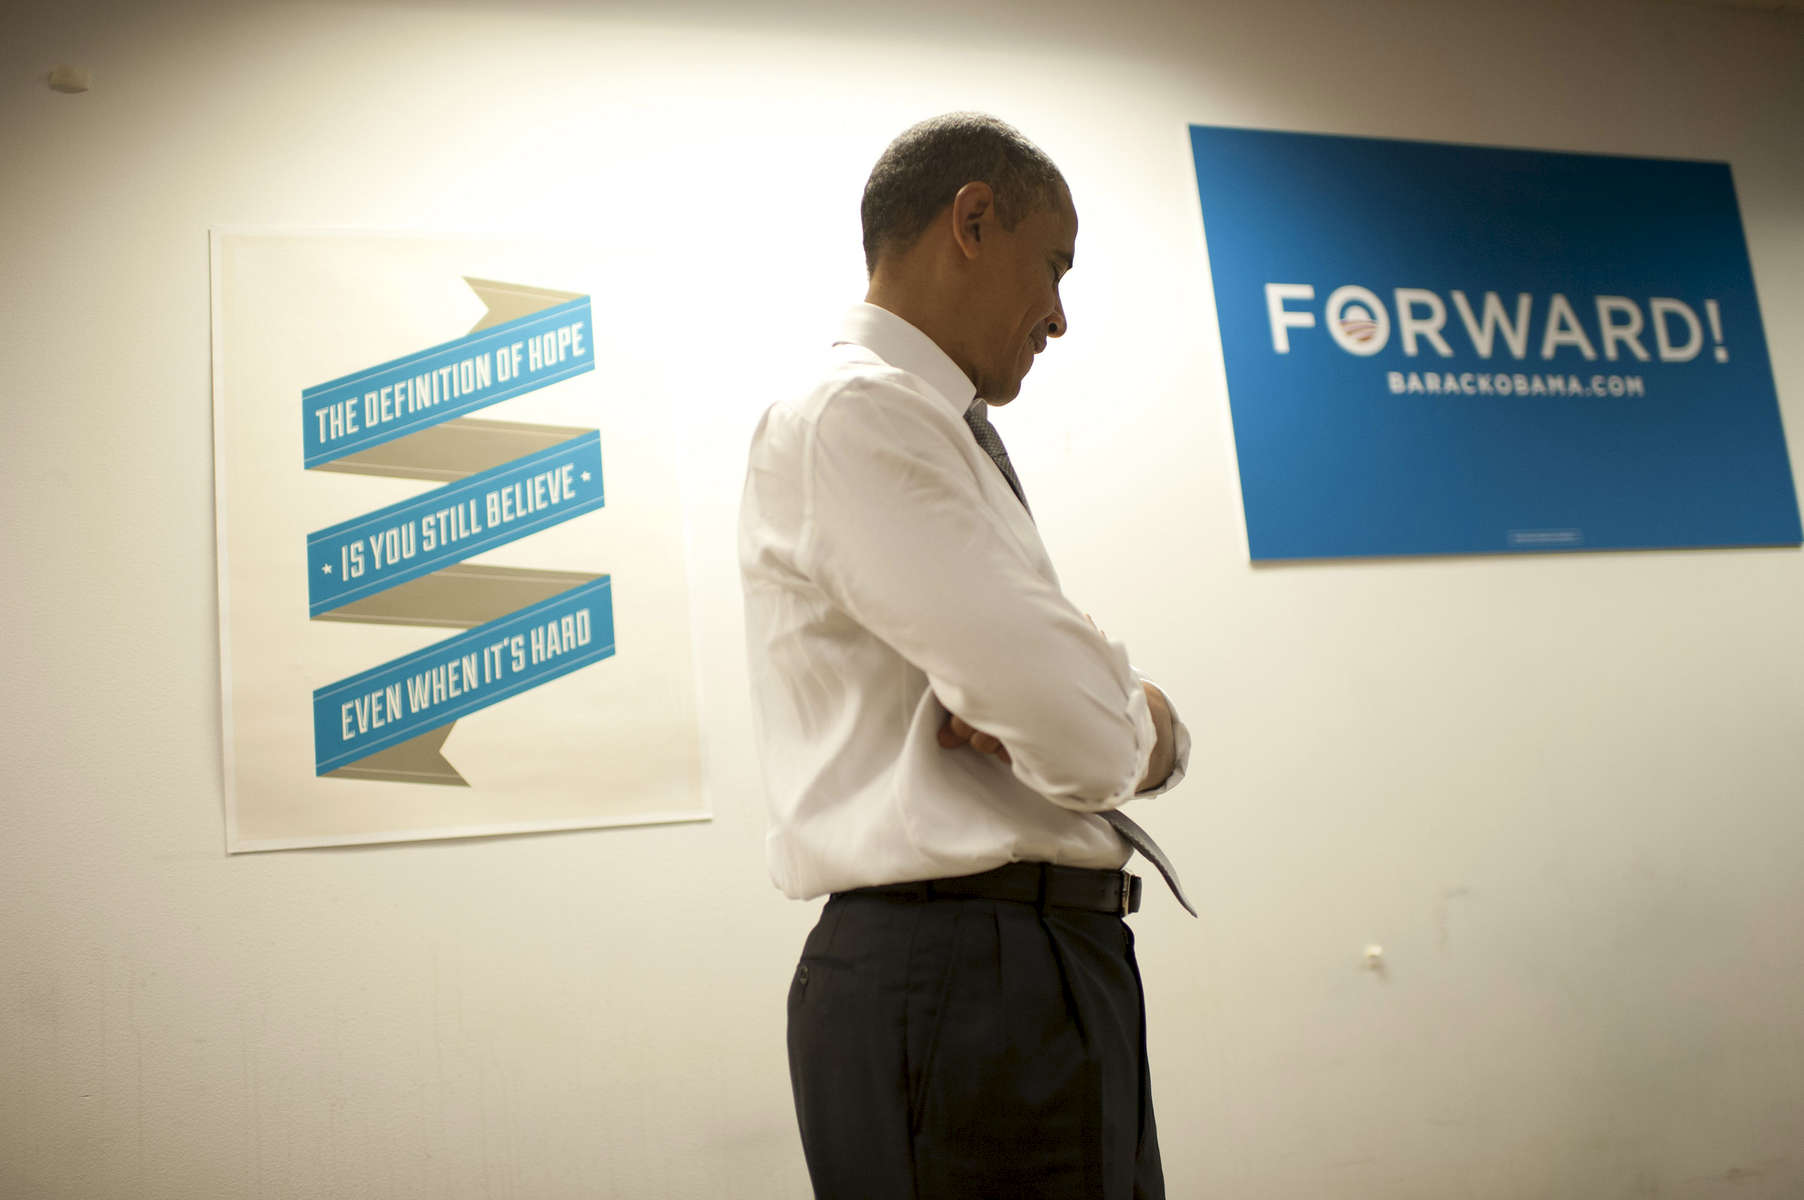 November 8, 2012 - Chicago, IL: President Barack Obama waits to speak to his campaign staff the day after he was elected to a second term as President of the United States.  (Scout Tufankjian for Obama for America/Polaris)